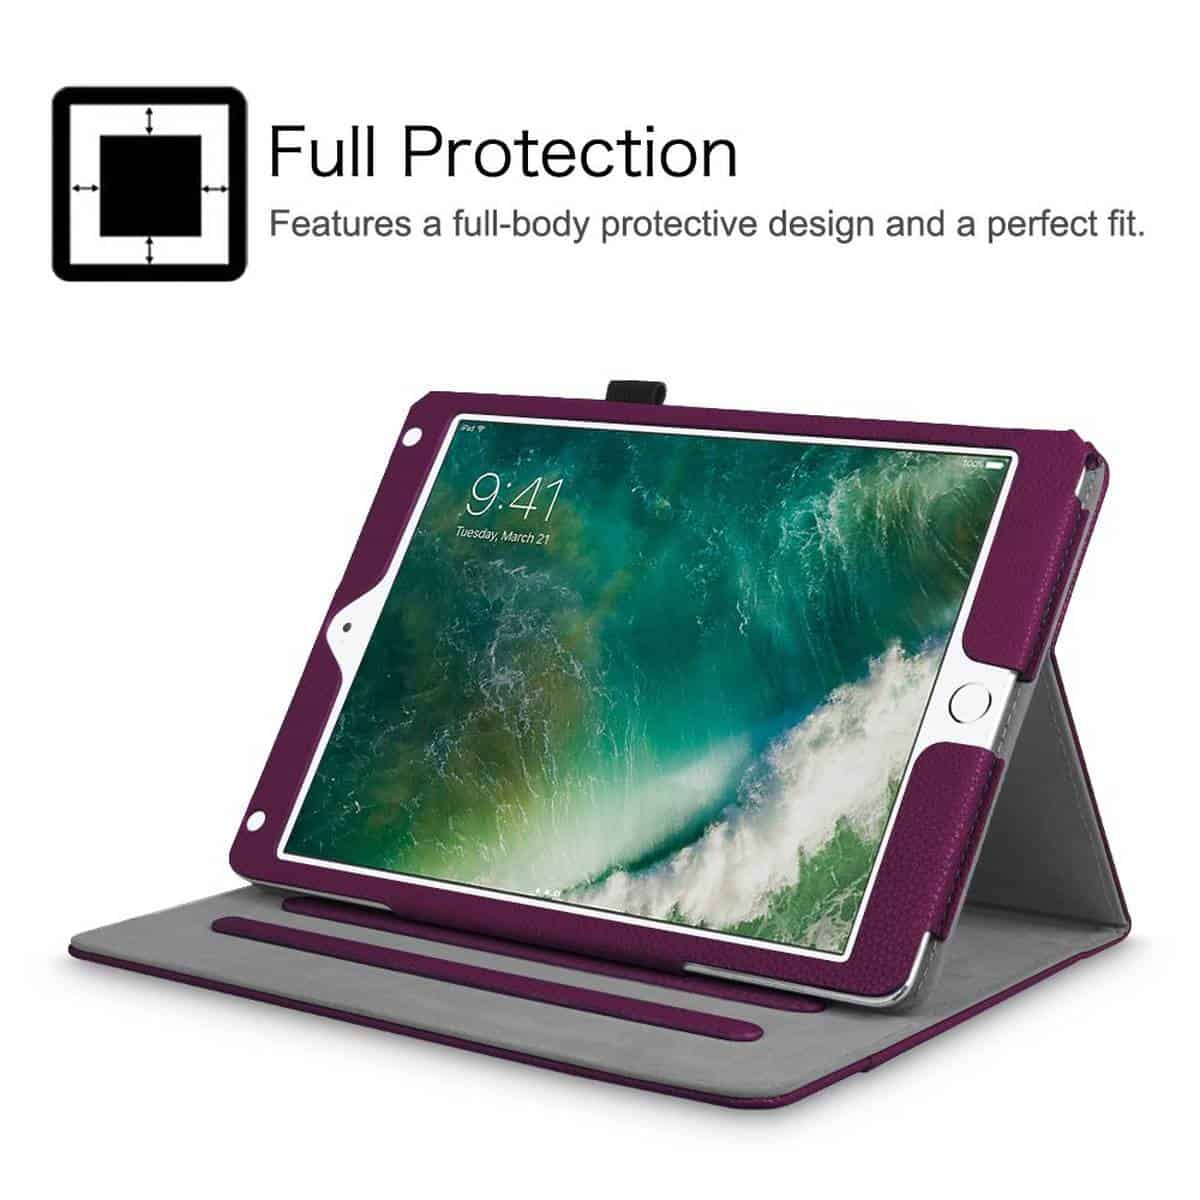 Fintie iPad Case | Essential iPad Accessories